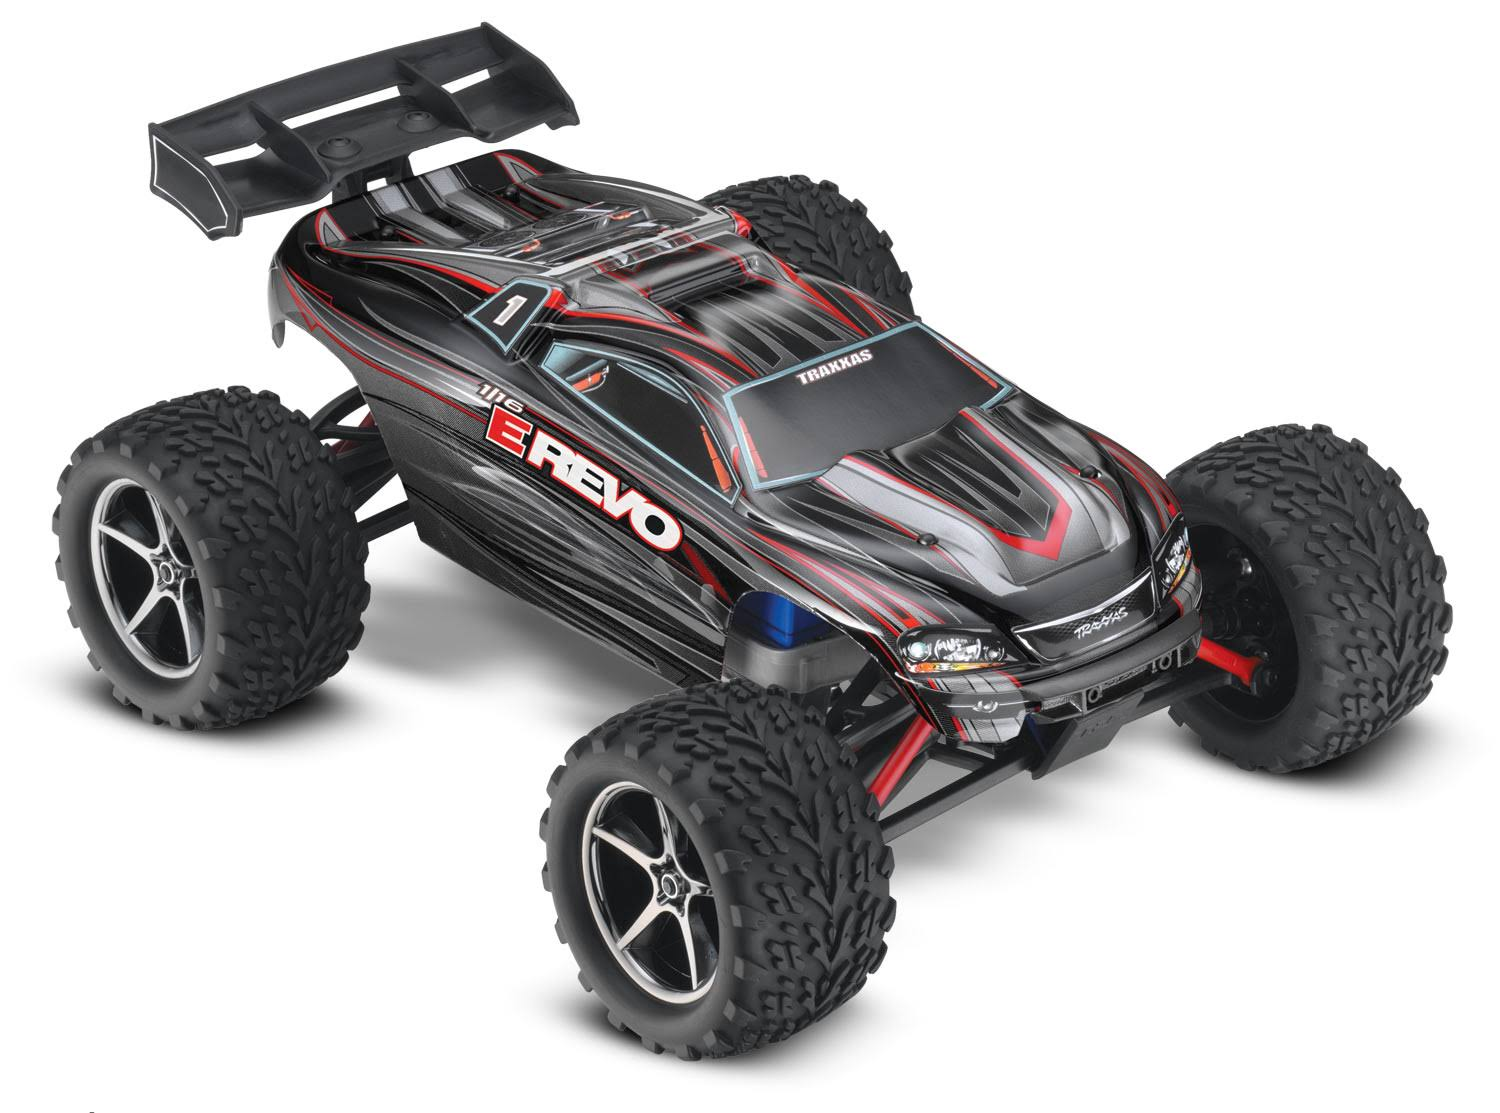 Traxxas E-Revo 4WD Racing Monster Truck - Black, 1/16 Scale, with TQ 2.4GHz Radio